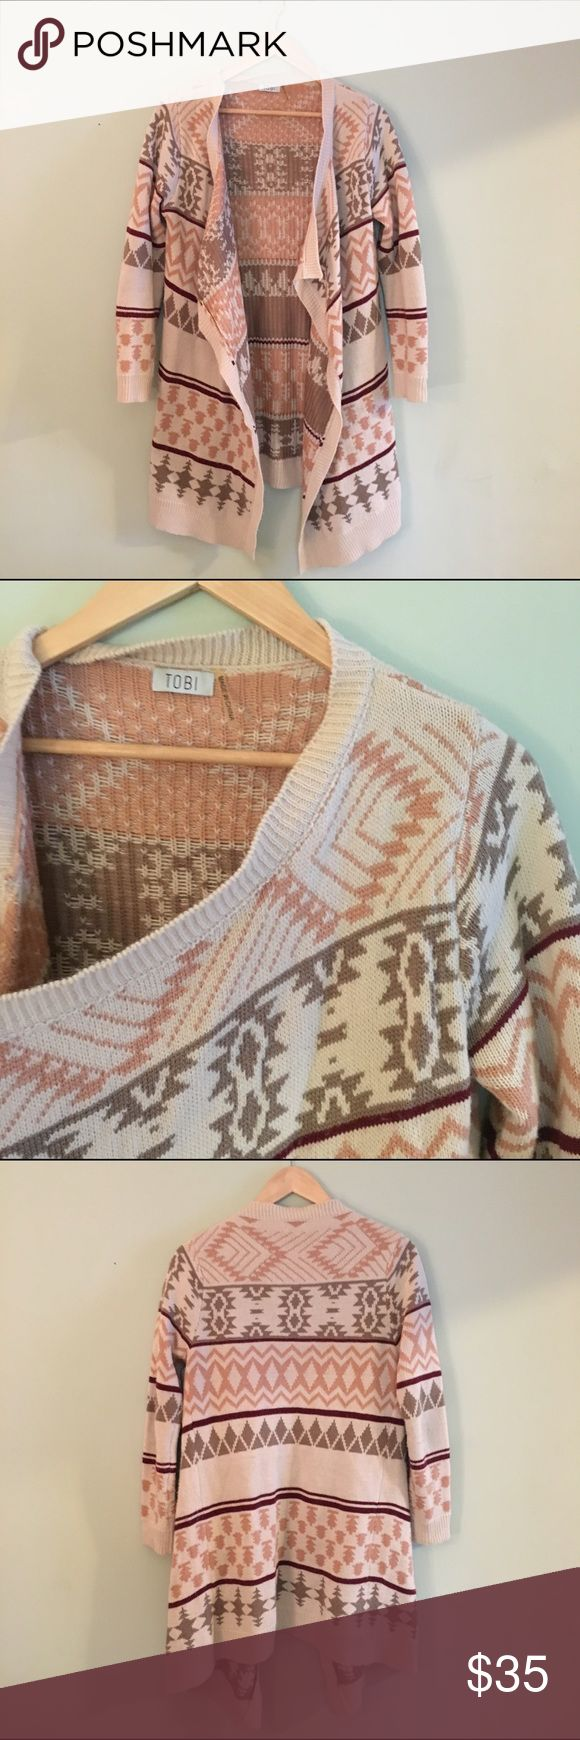 Tribal print Tobi sweater Long tribal print sweater from Tobi, looks great belted! Tobi Sweaters Cardigans